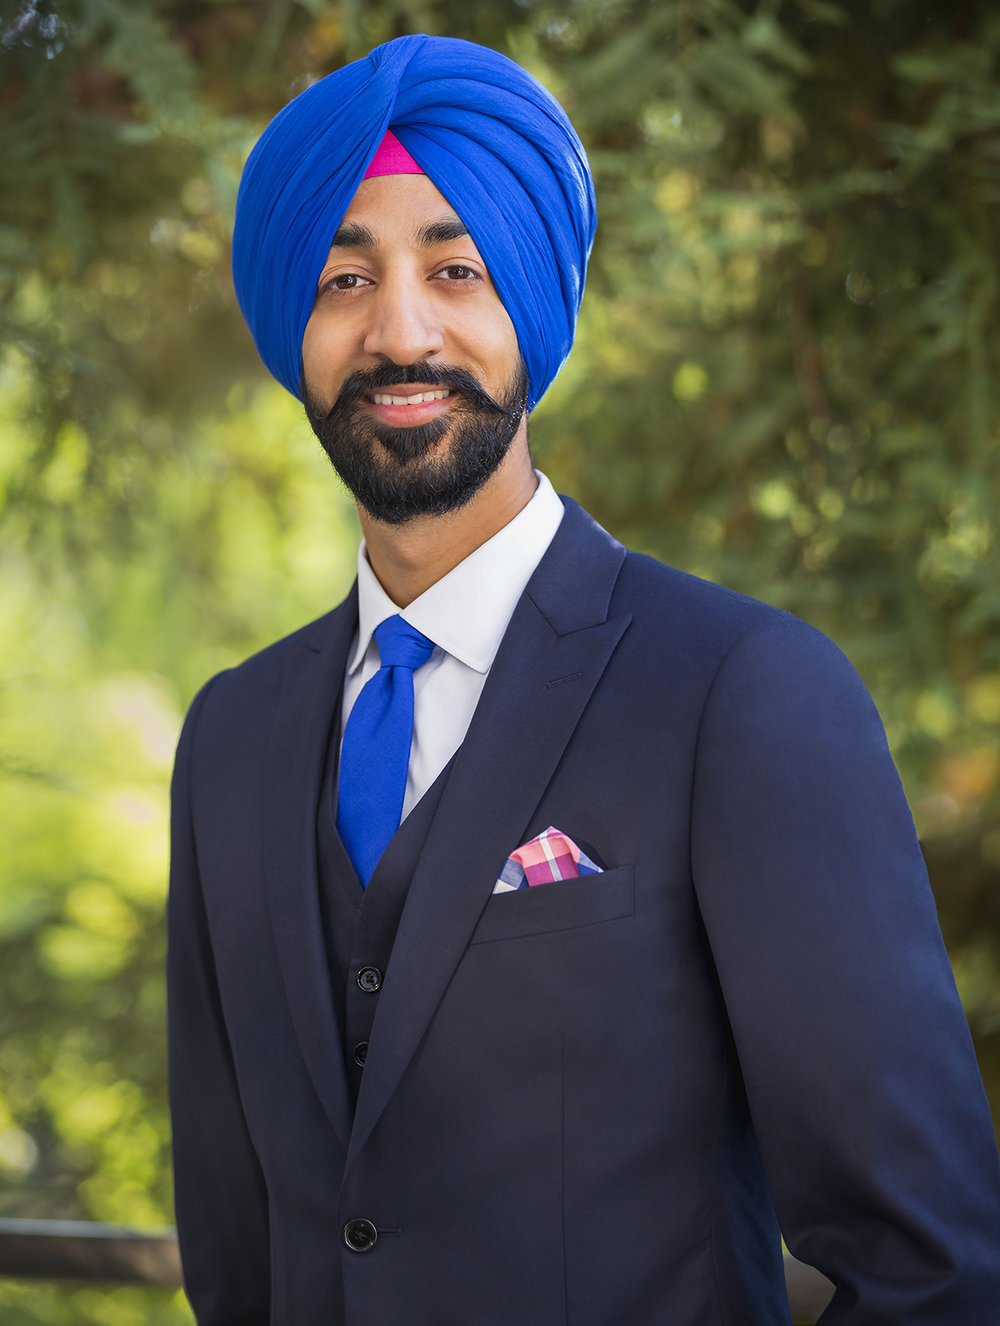 Harinder Chahal, MD - Fresno, CaliforniaLet the beauty of what you love be what you do.